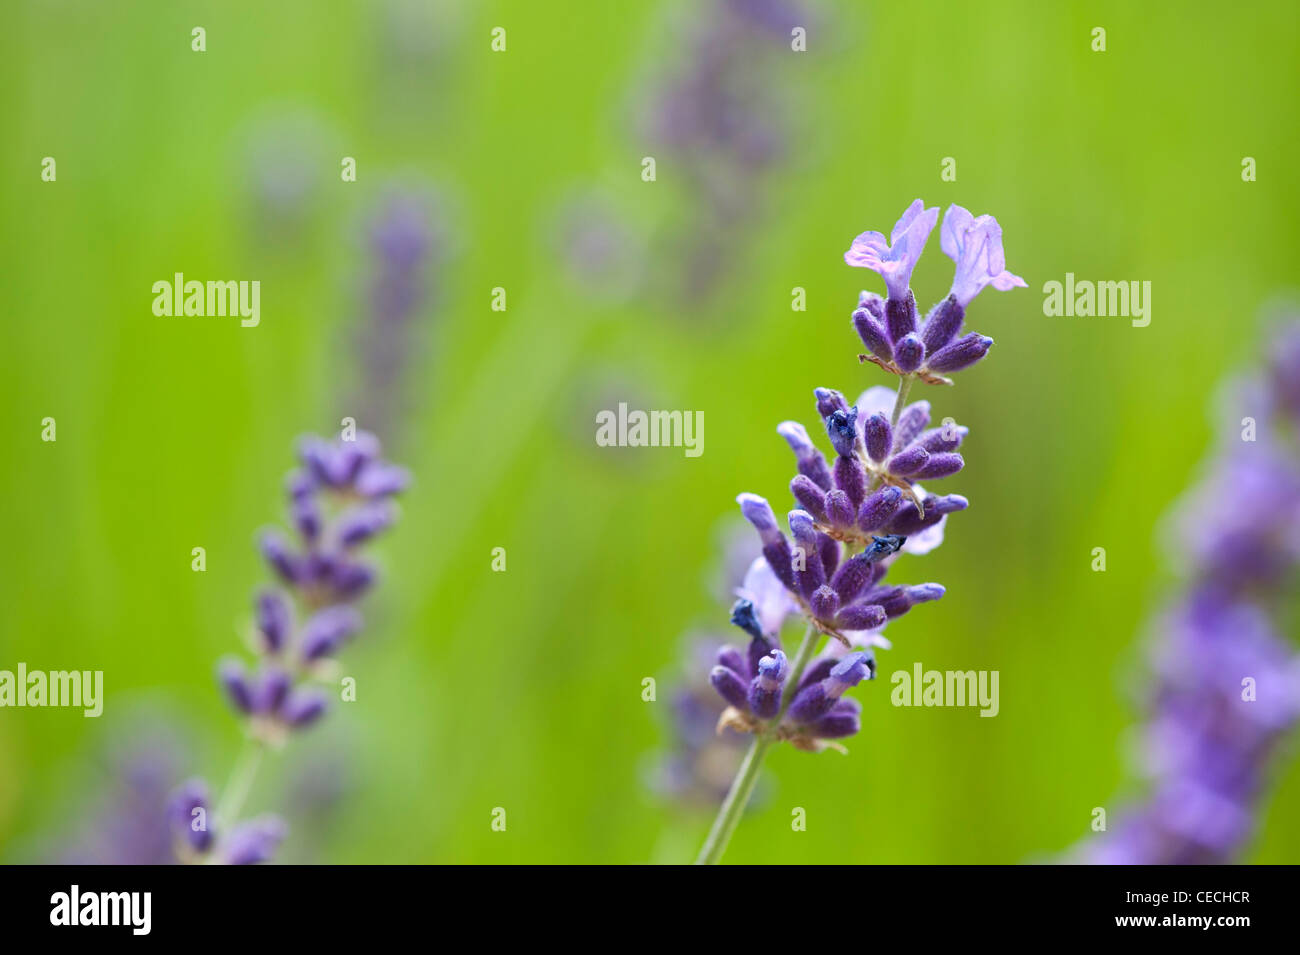 Lavandula Angustifolia 'Hidcote'. Lavender against soft green background - Stock Image